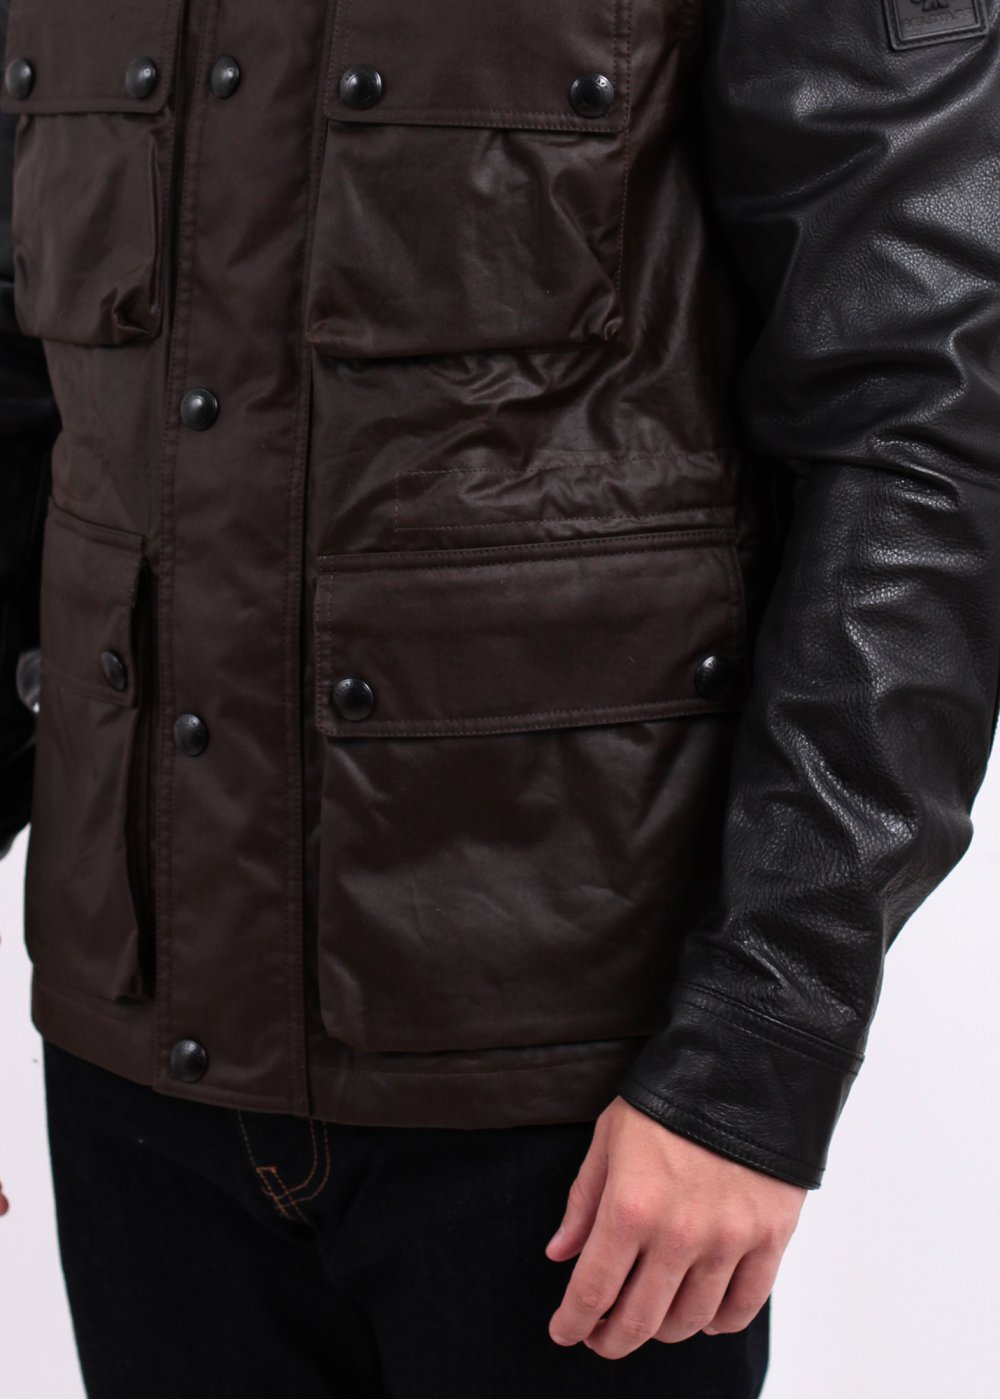 how to fix faded leather jacket